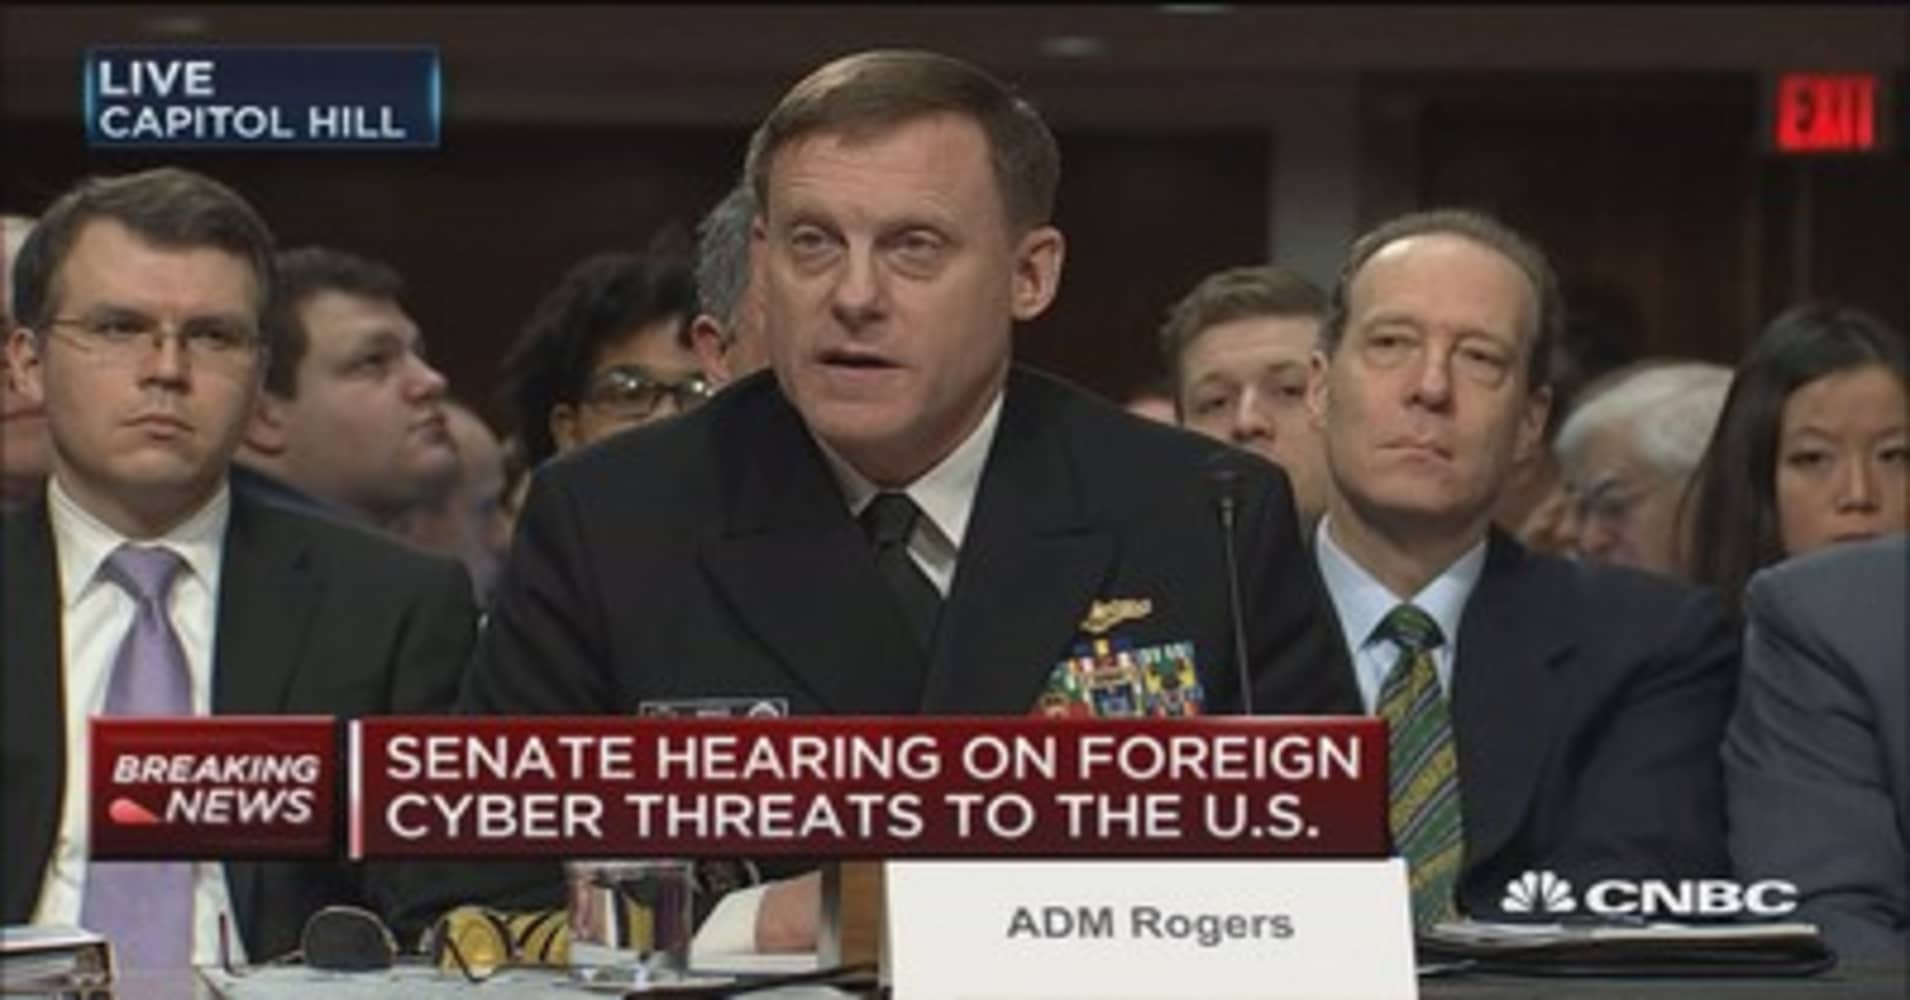 Image result for photos of admiral rogers at senate hearing